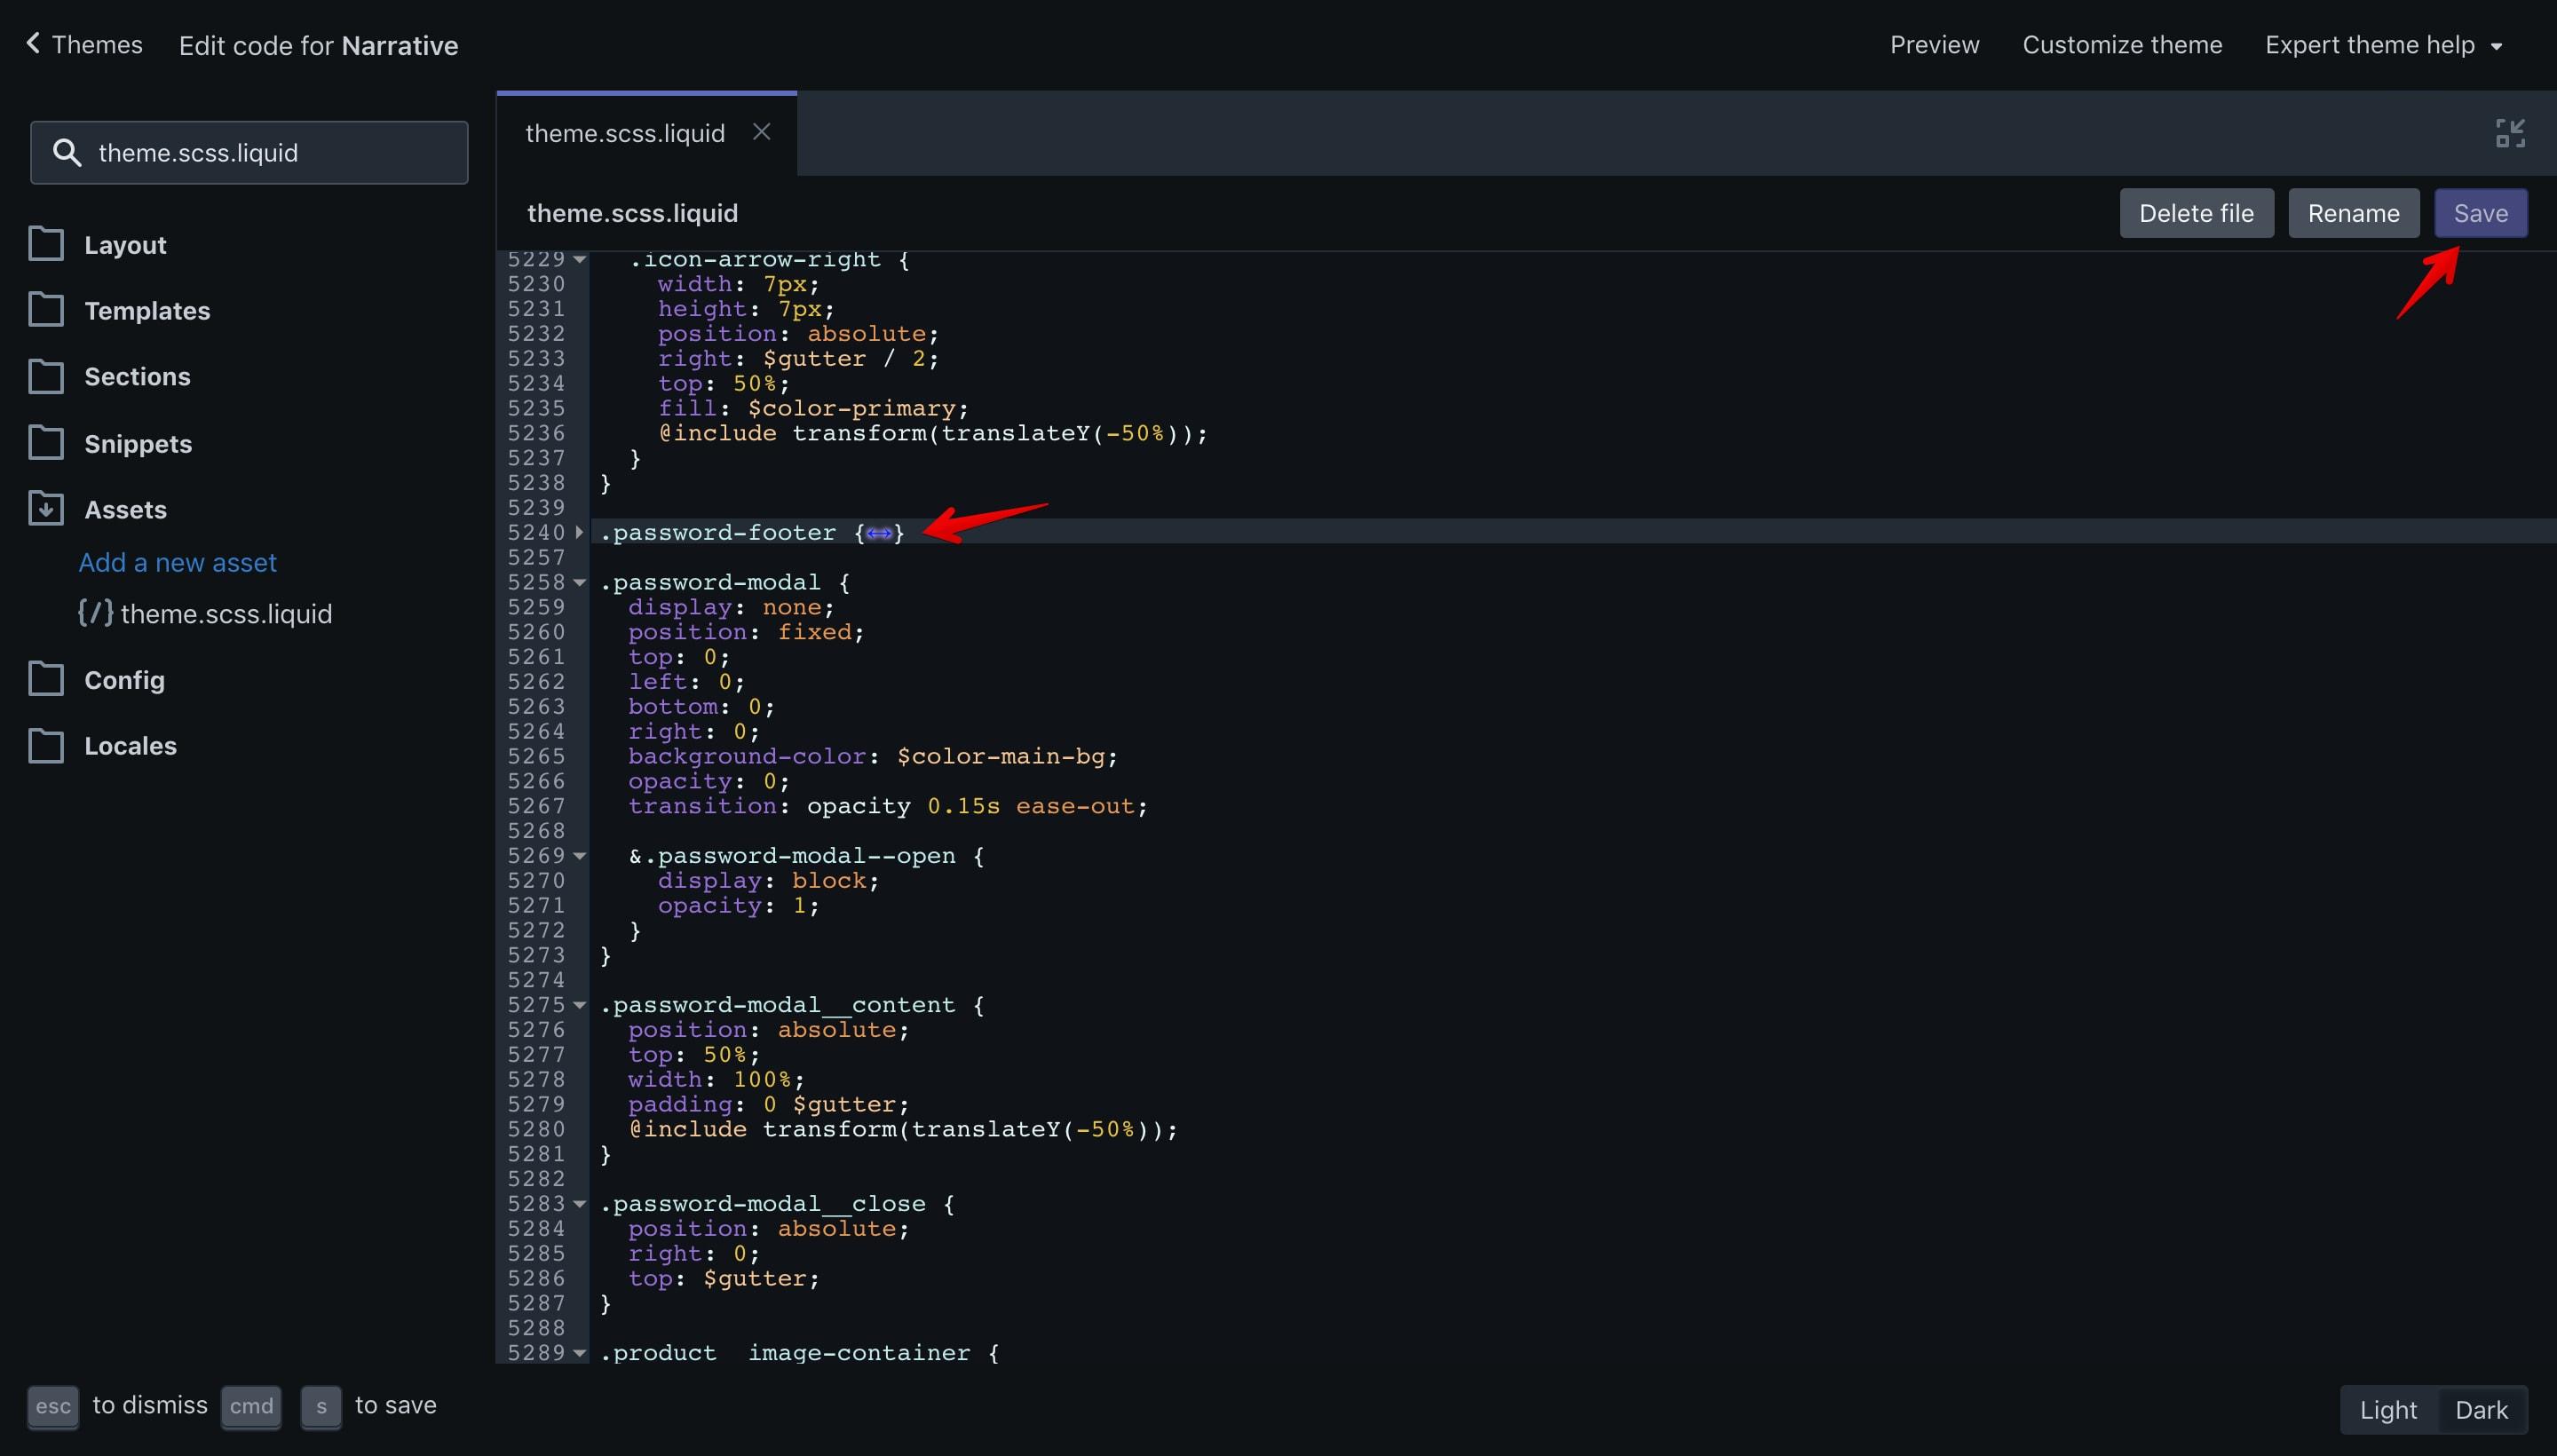 CSS code that has to be removed in the Narrative theme.